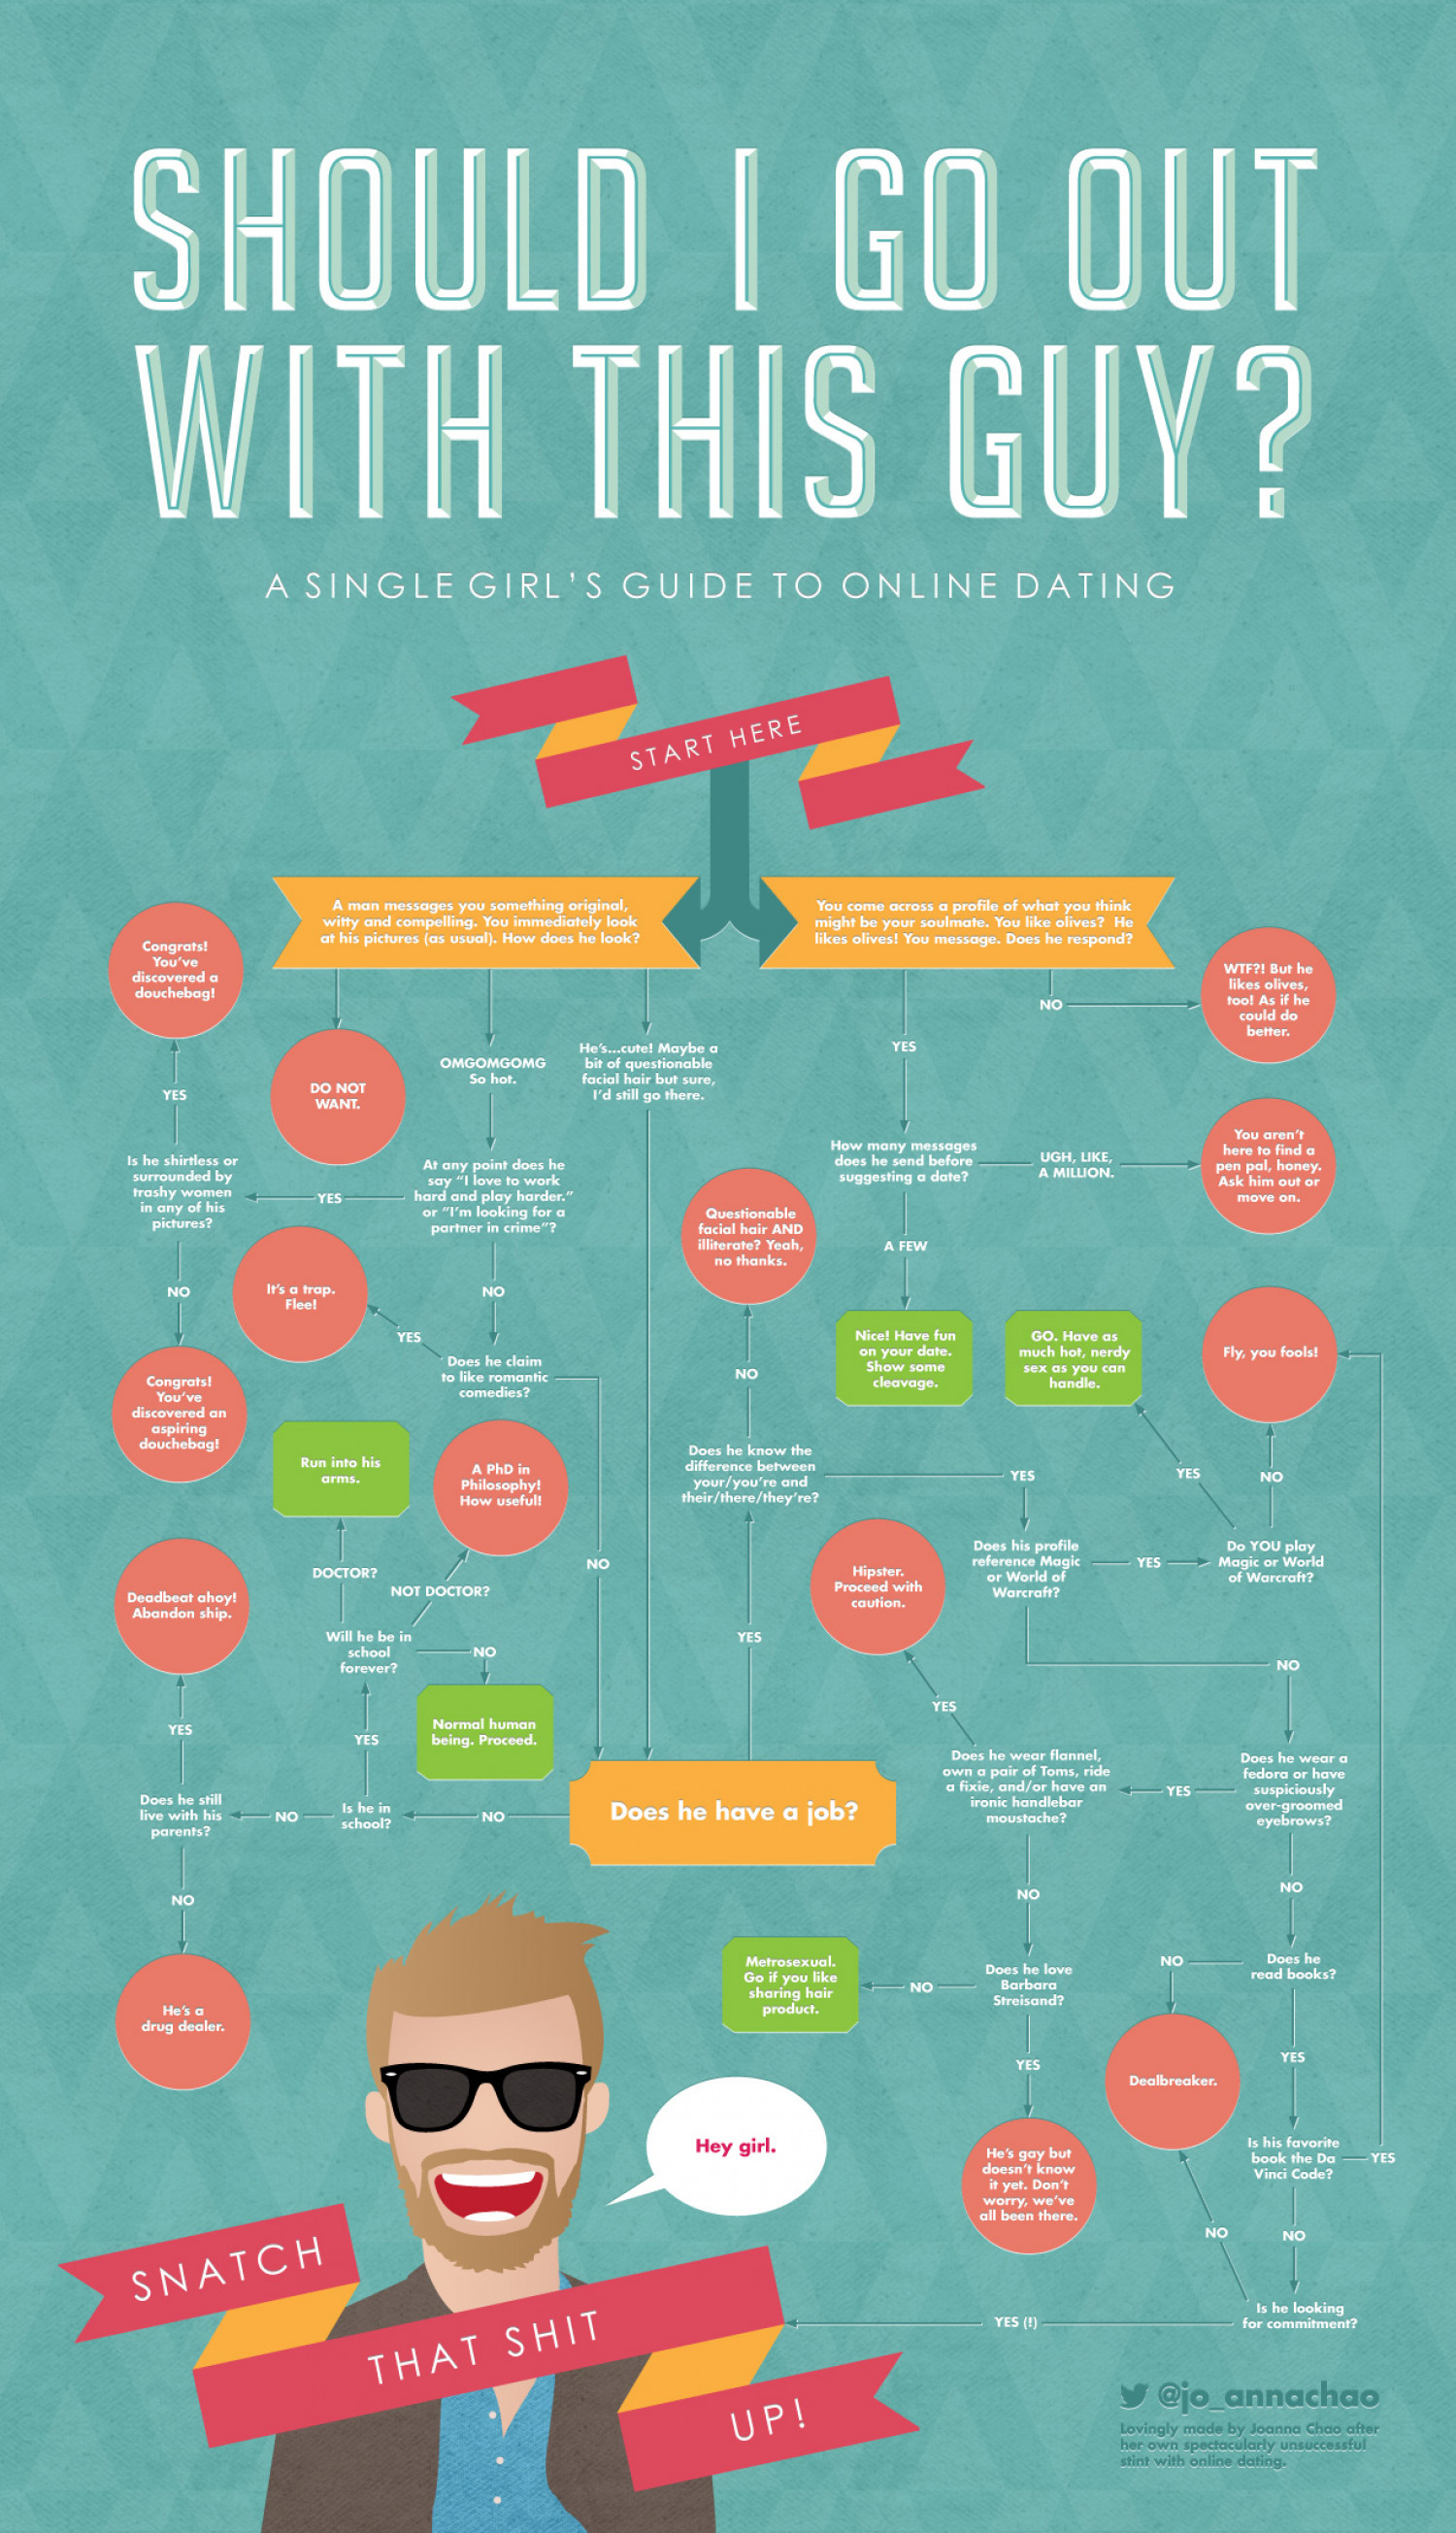 Should I go out with this guy? A single girl's guide to online dating. Infographic